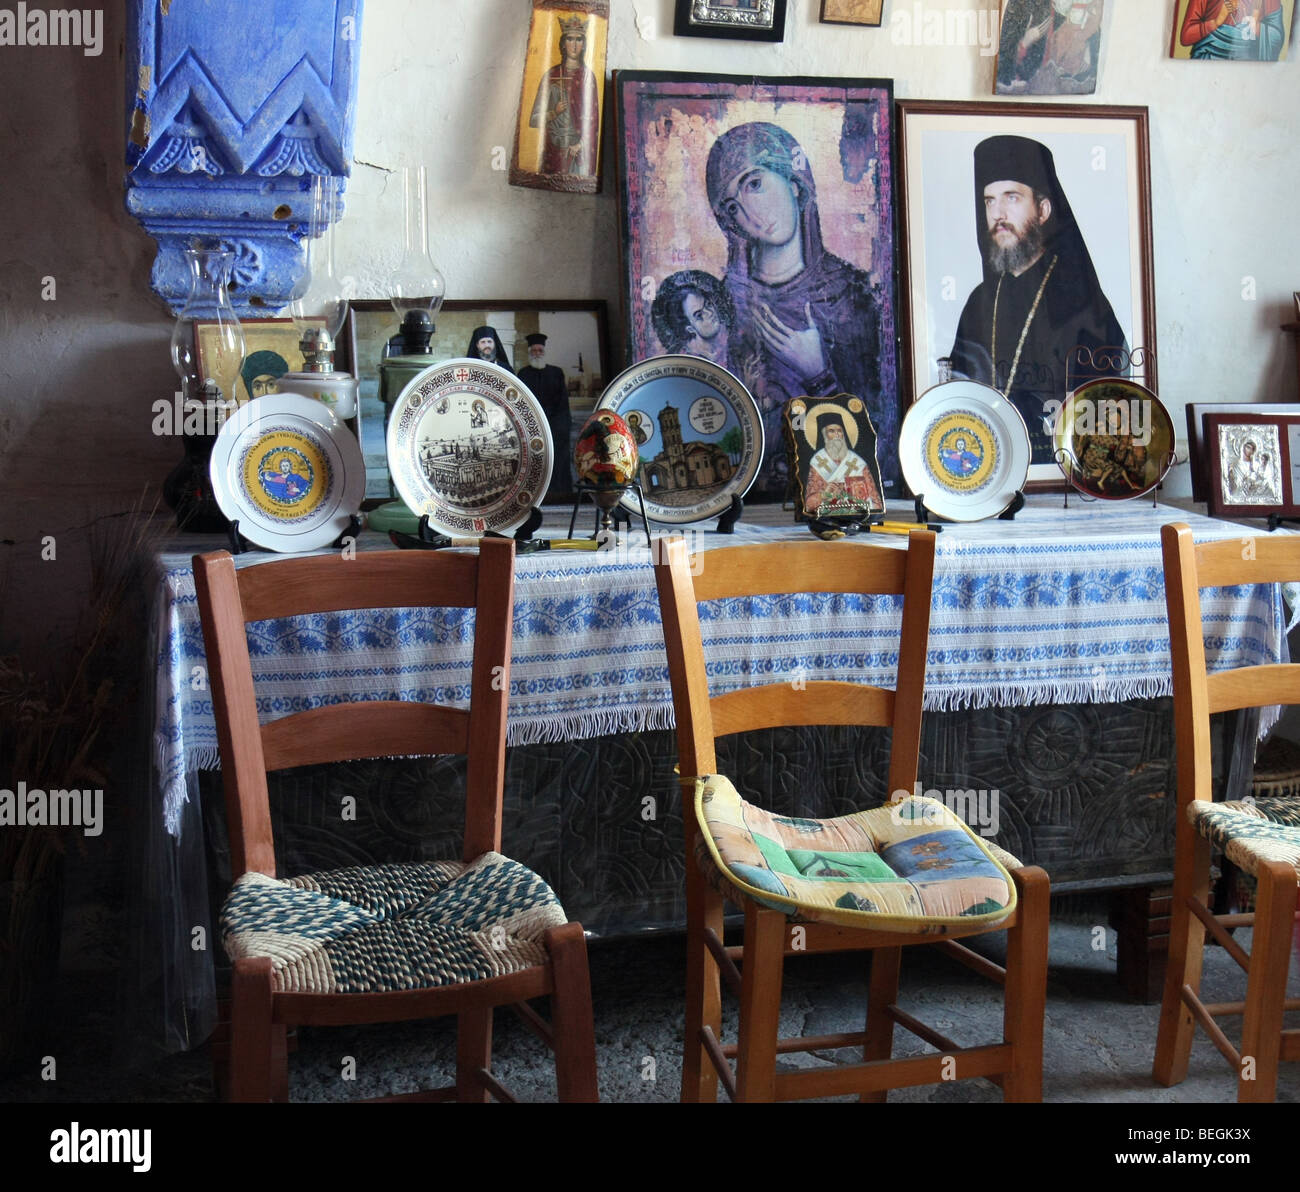 Inside the home of the old priest in the small village of Pera, Cyprus. - Stock Image